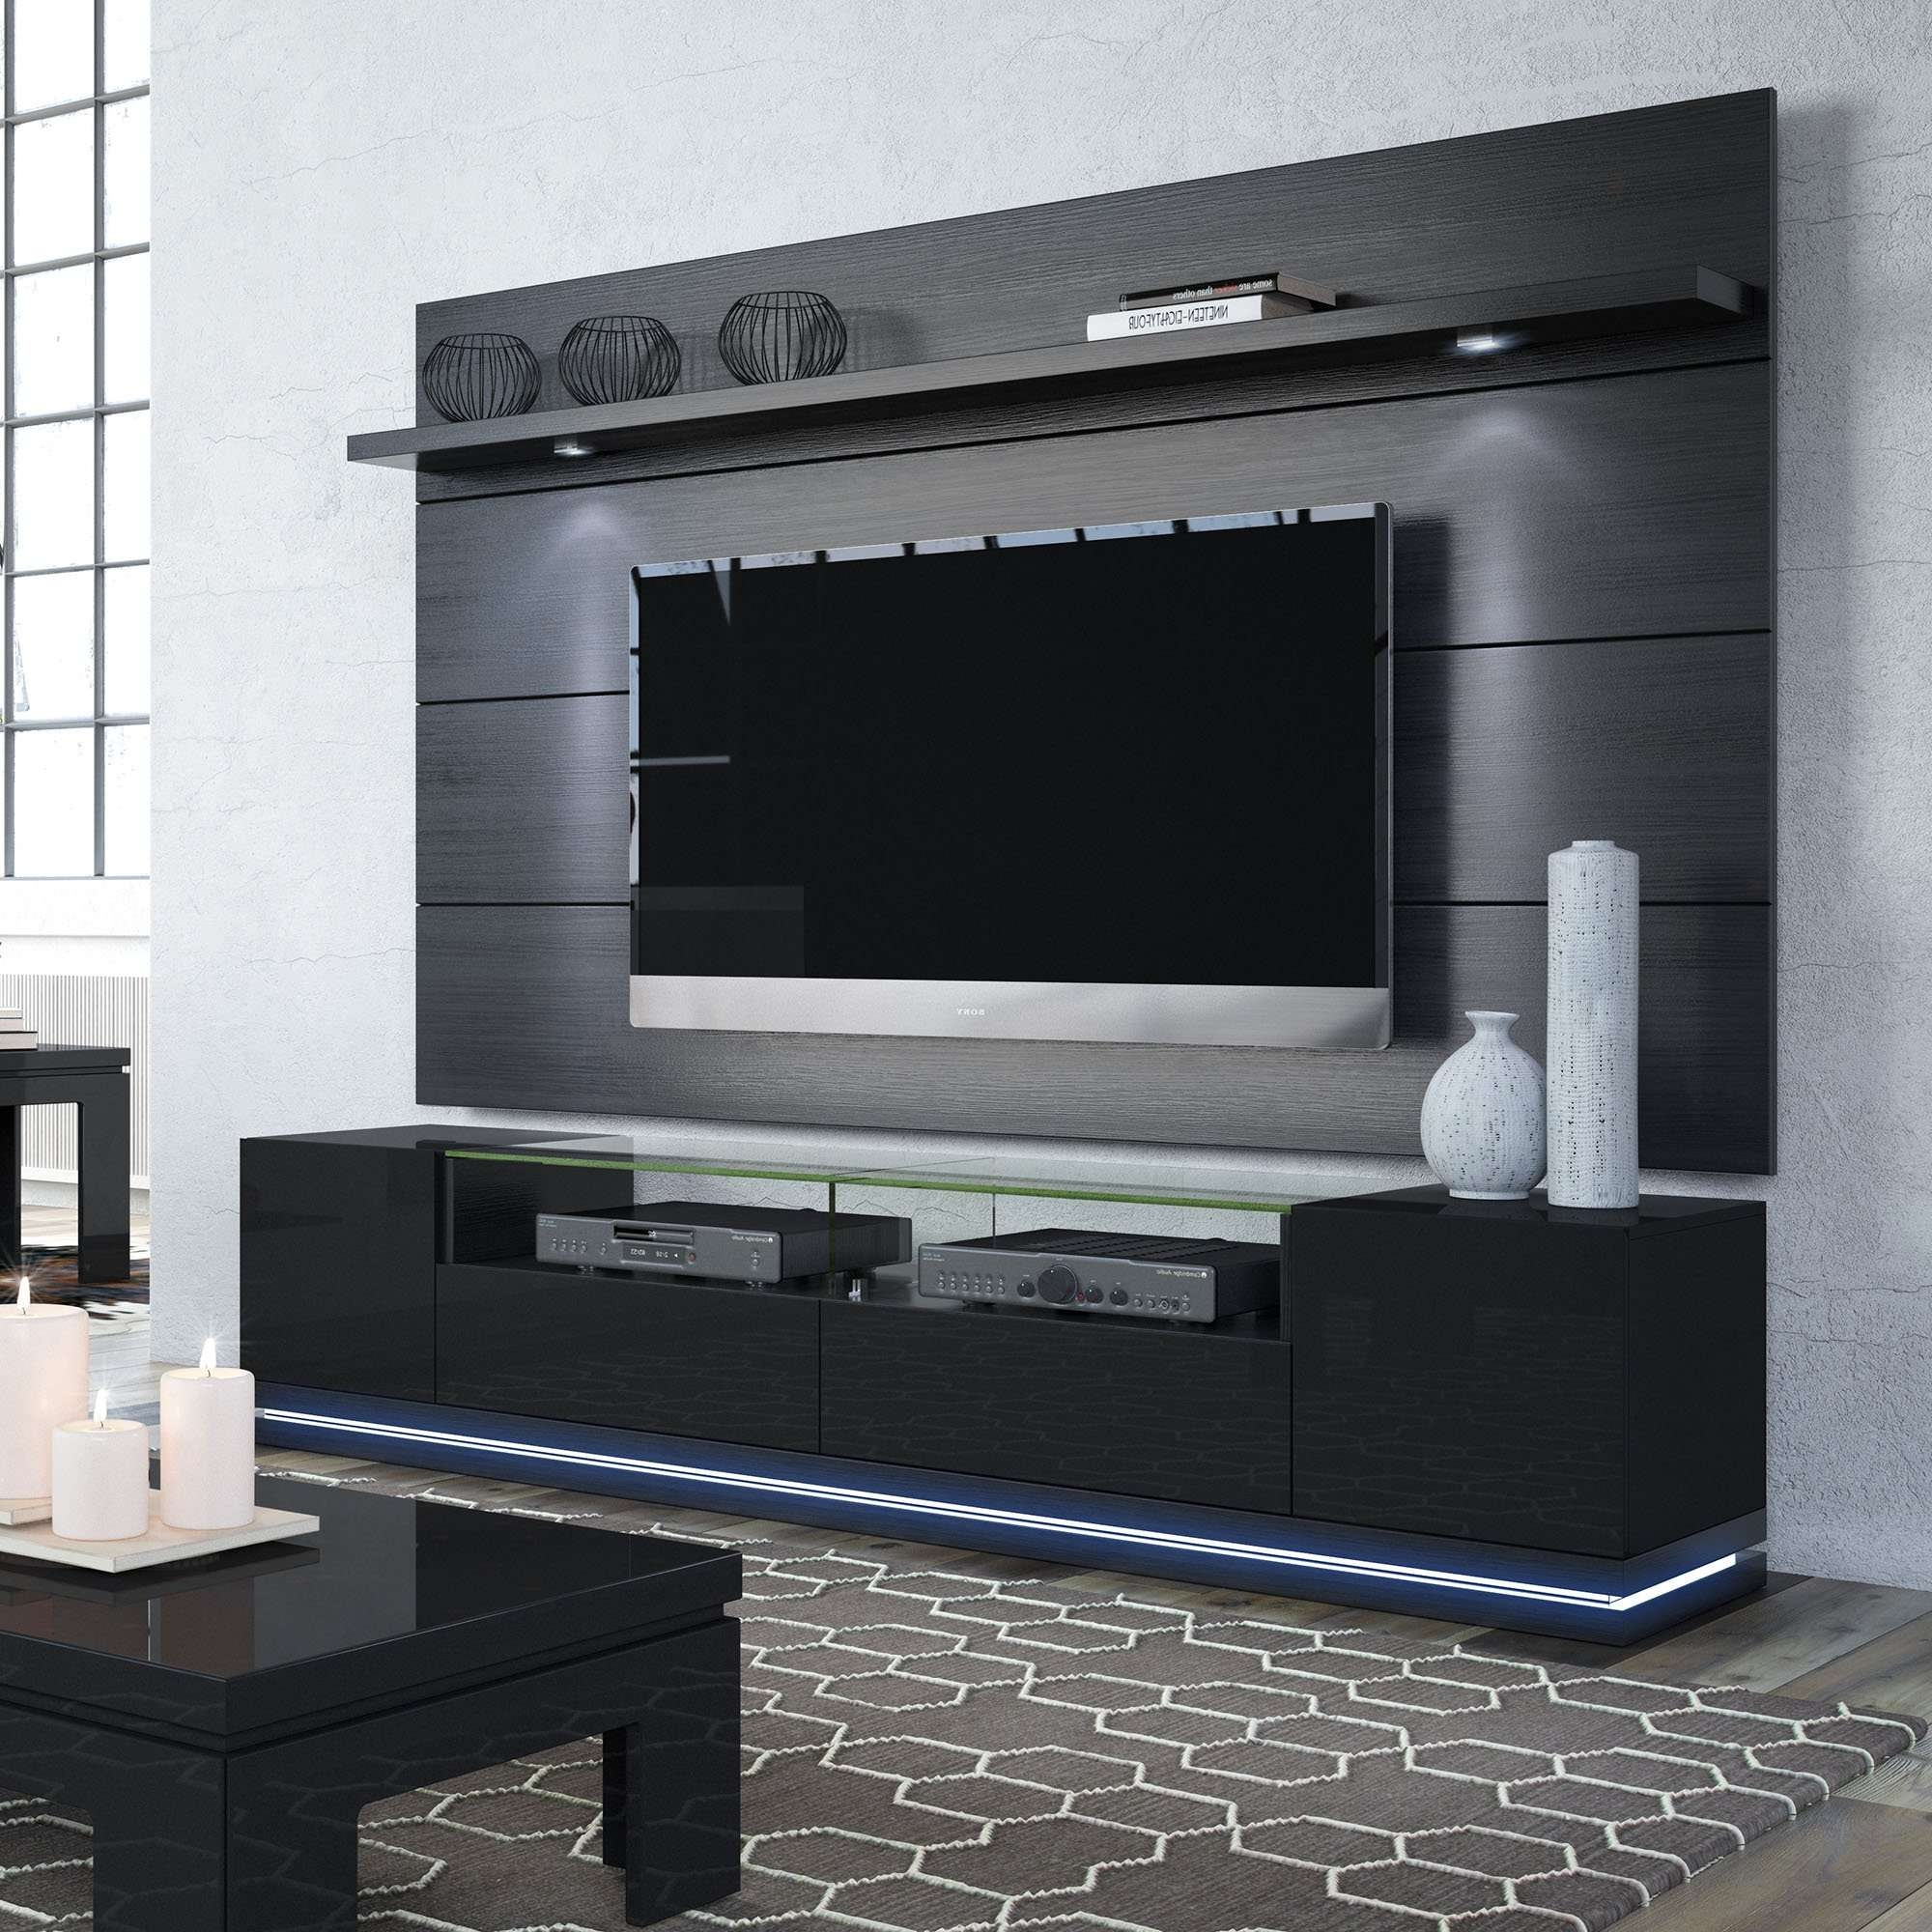 Vanderbilt Black Gloss & Black Matte Tv Stand & Cabrini 2.2 With Shiny Black Tv Stands (Gallery 11 of 15)